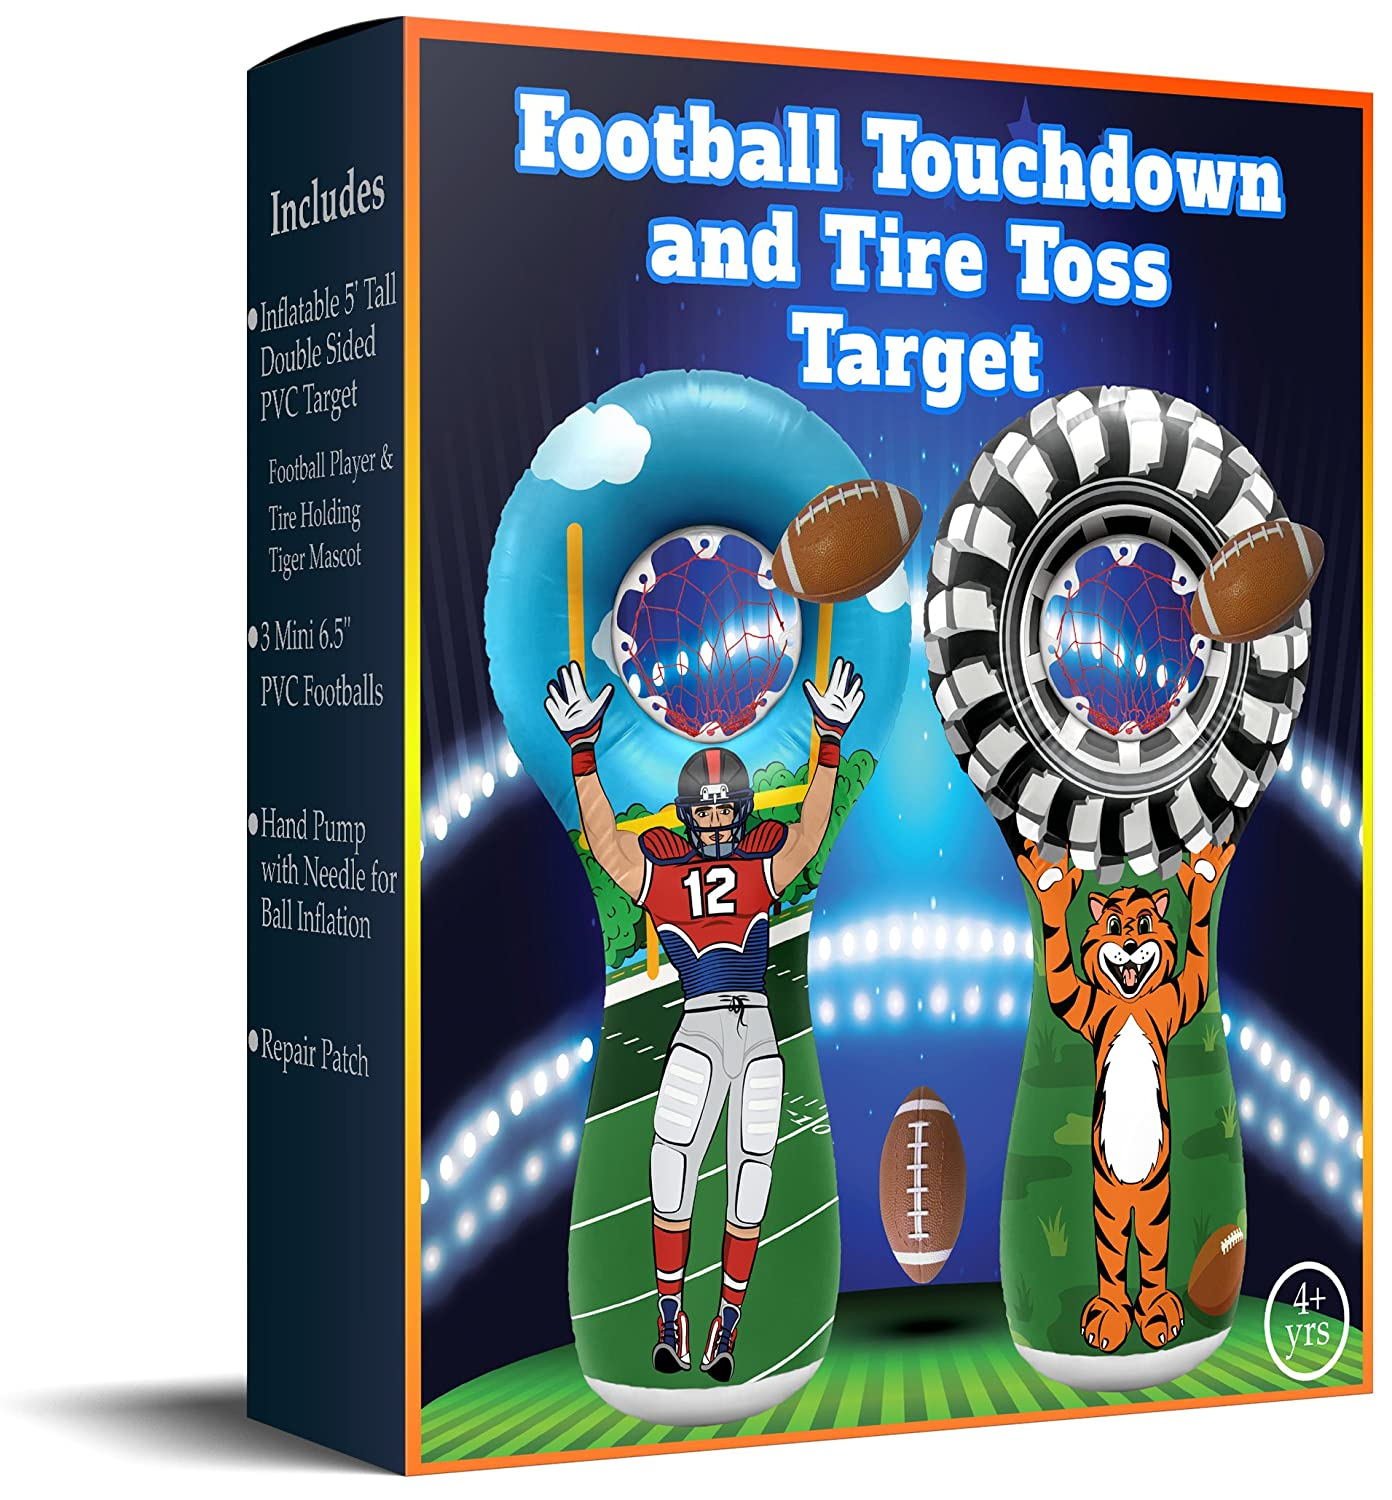 Football Player on One Side and Mascot Holding Tire on Reverse 5 Foot Tall Double Sided Throwing Target Toy ImpiriLux Inflatable Football Toss Sports Game with 3 Mini Footballs Included